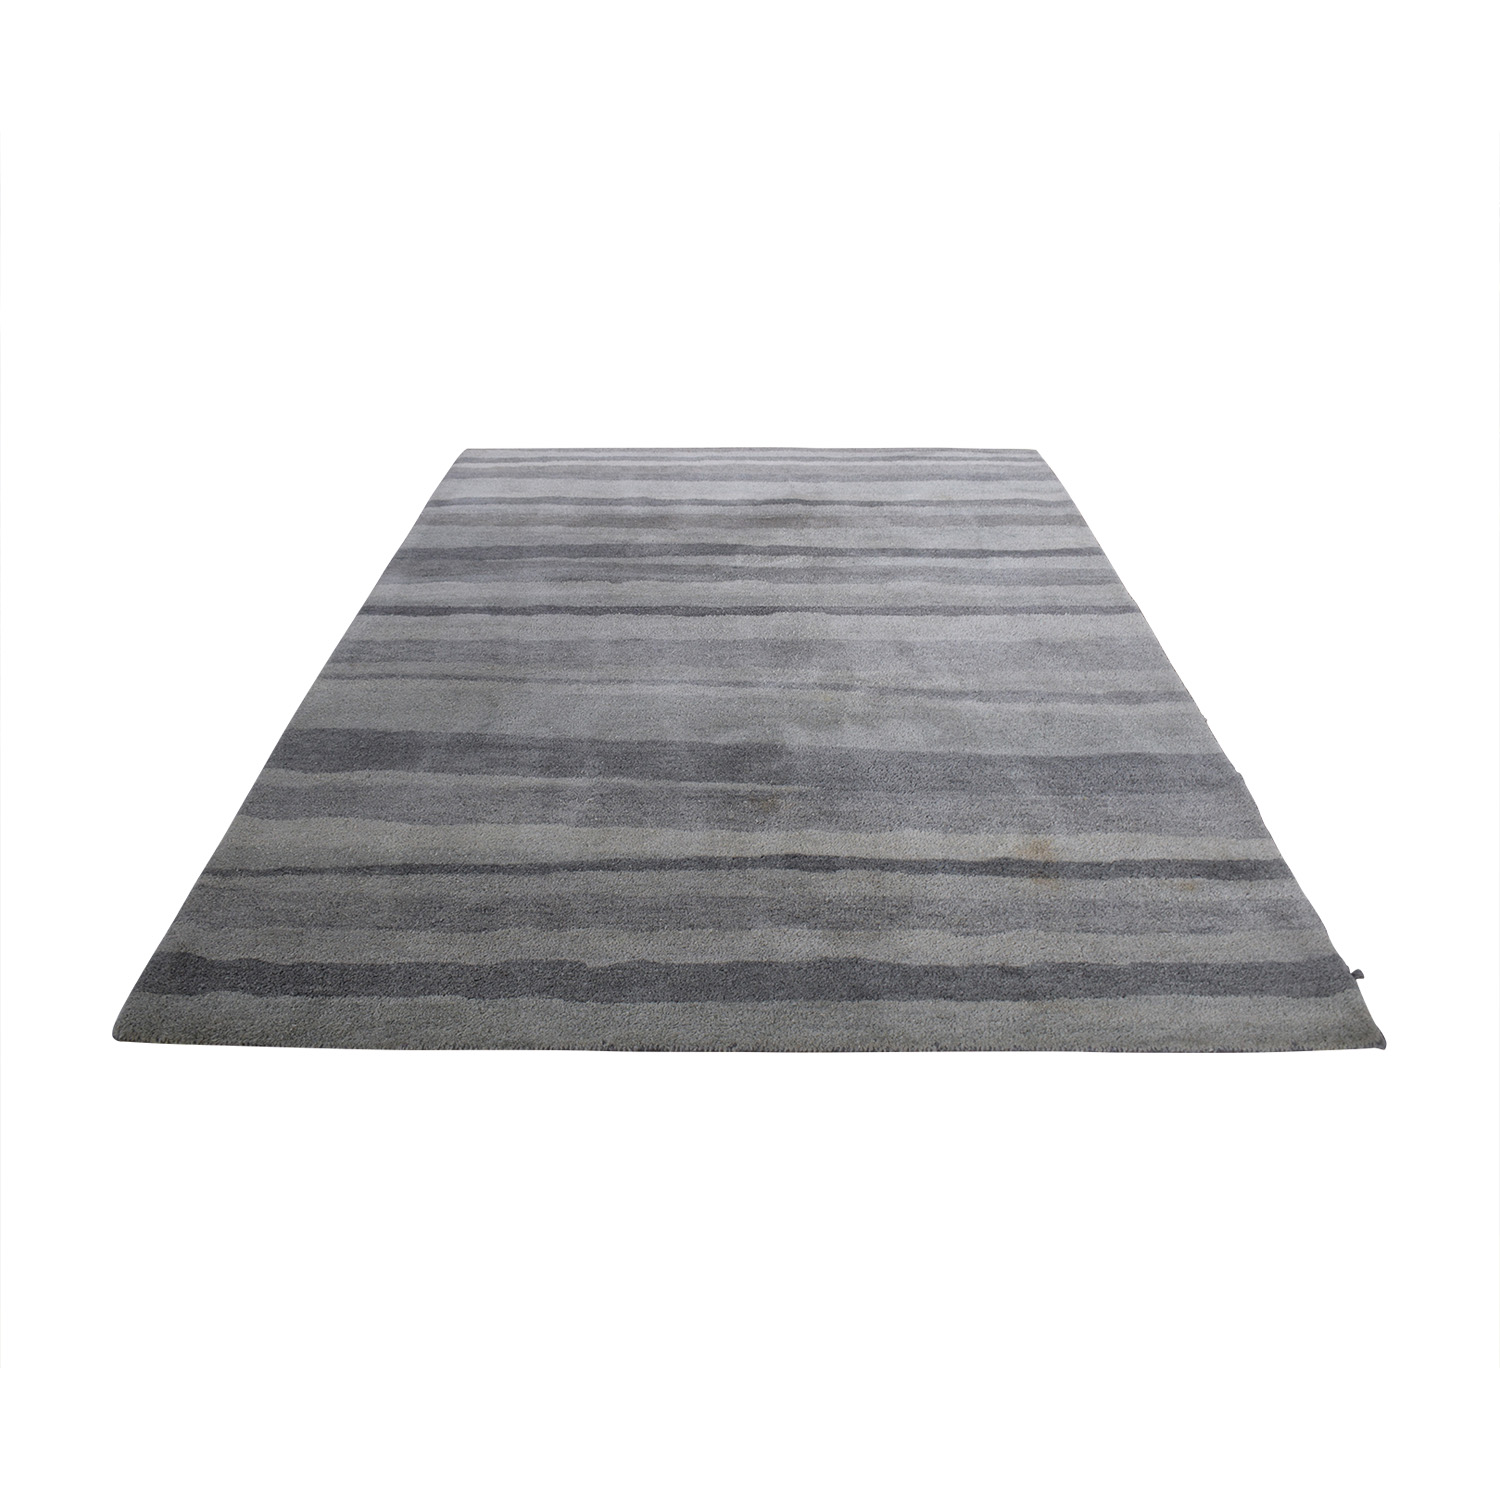 Calligaris Grey Rug / Rugs